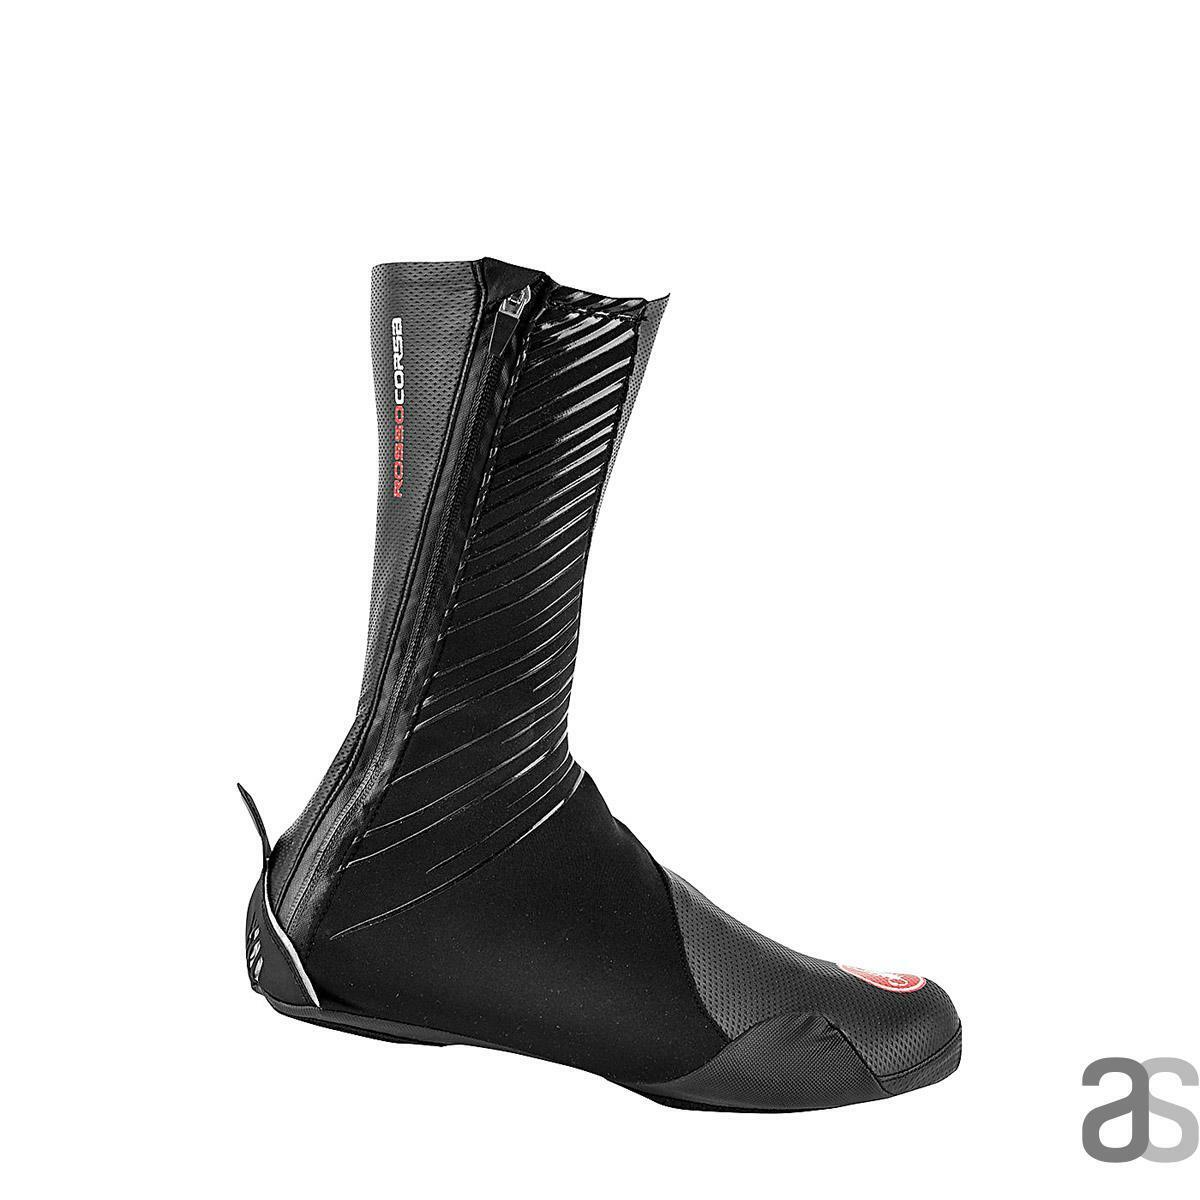 CASTELLI ROS SHOECOVER COUVRE-CHAUSSURE CYCLISME 4518529 010